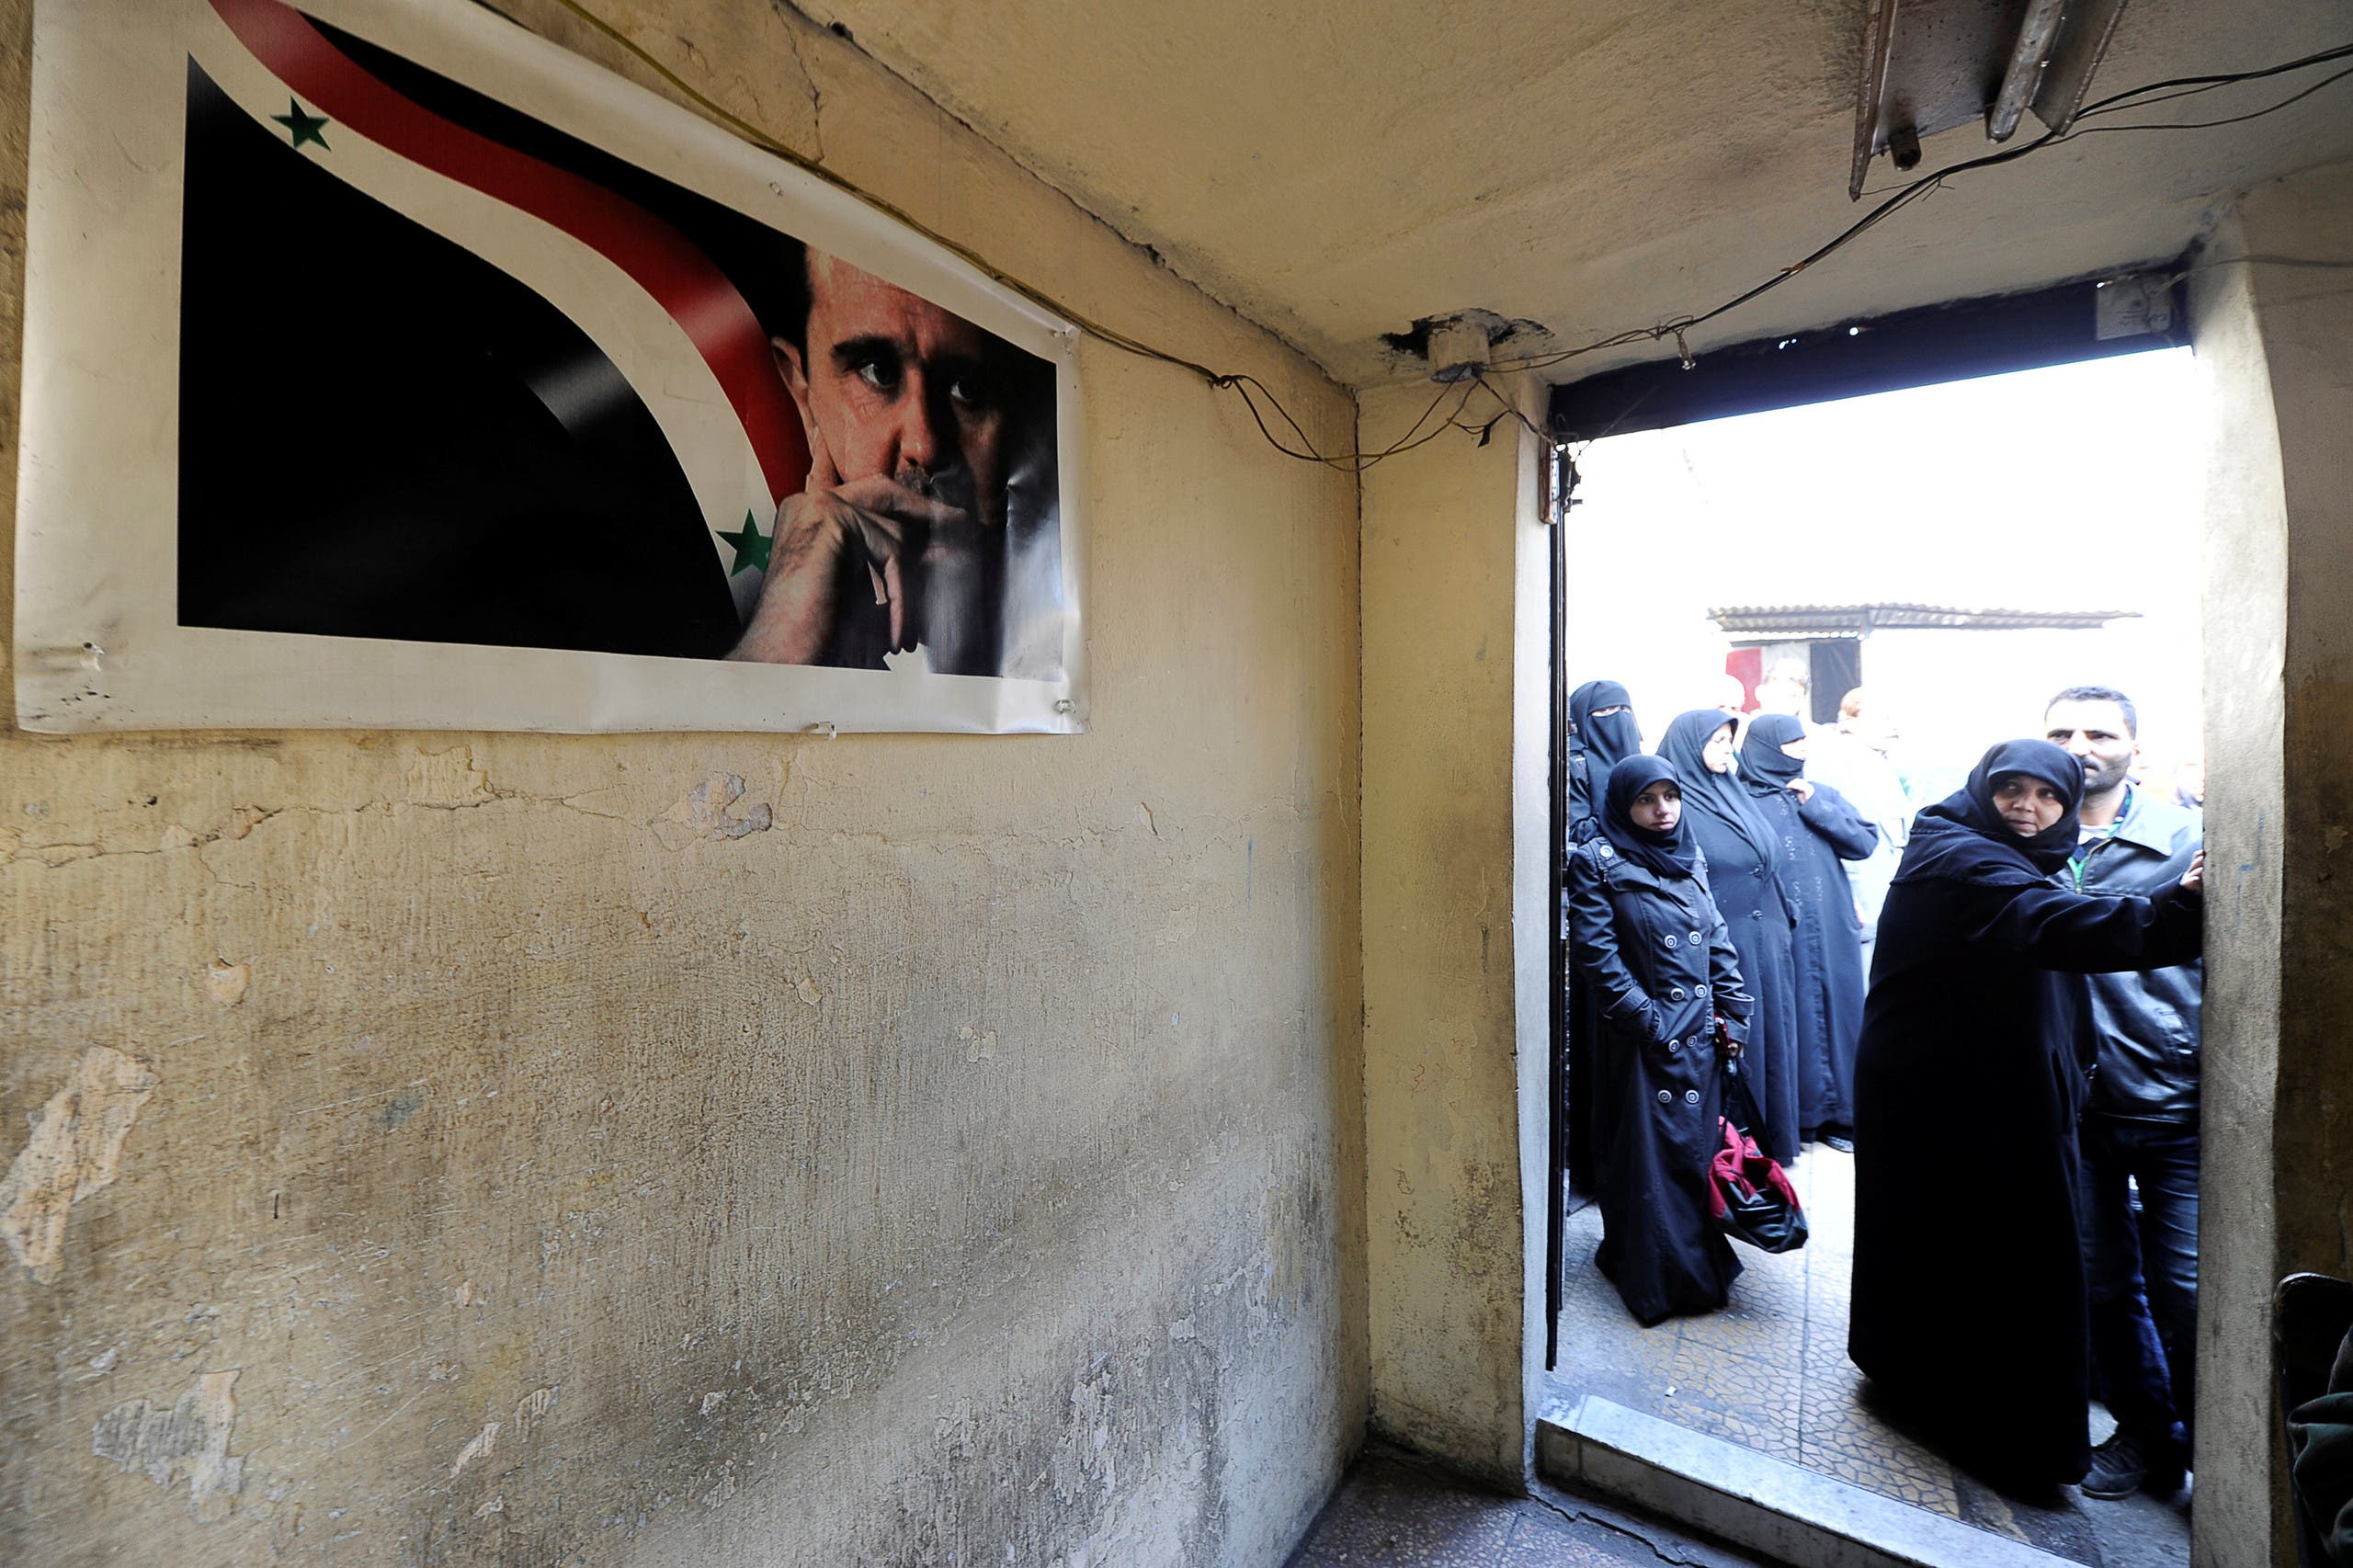 Civilians wait outside a government military police centre to visit their relatives, who were evacuated from the eastern districts of Aleppo and are being prepared to begin their military service, in Aleppo, Syria December 11, 2016.